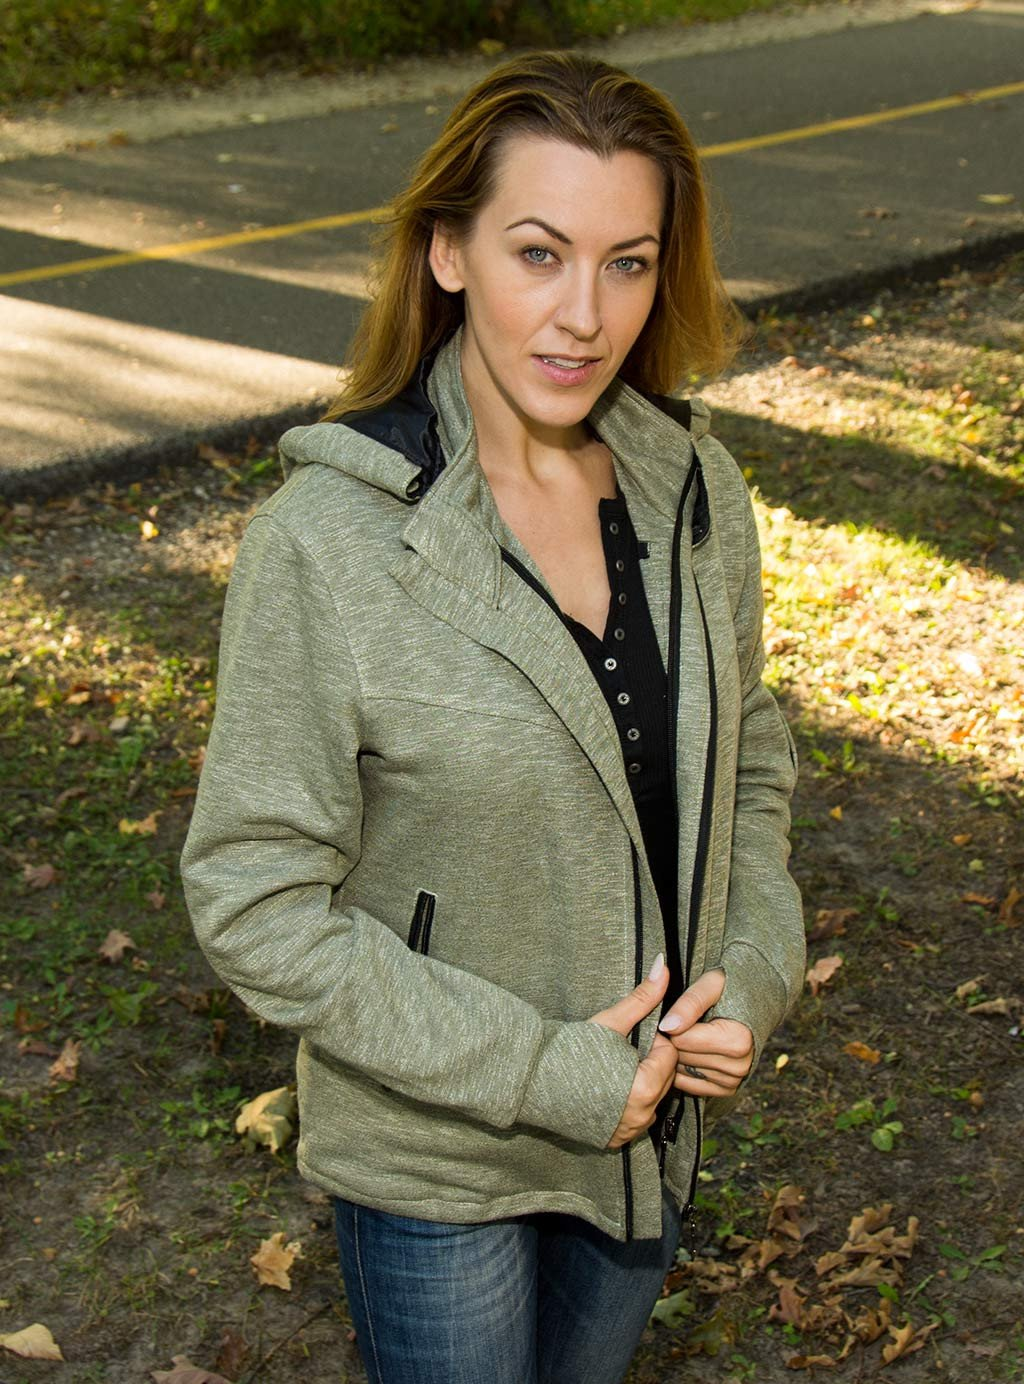 Travel Jacket with lots of pockets